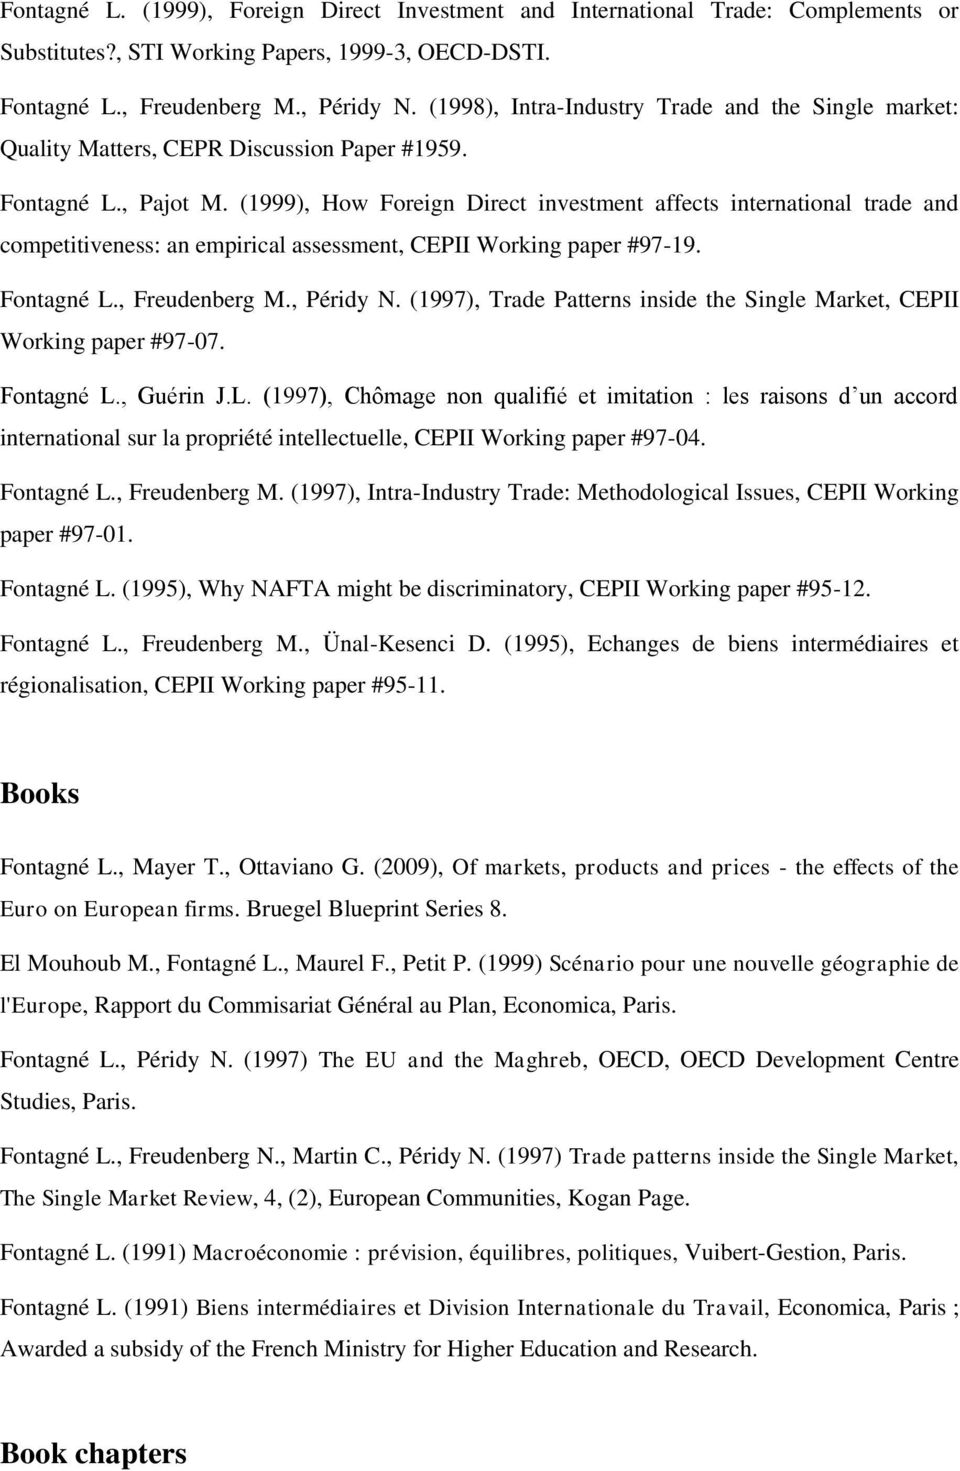 (1999), How Foreign Direct investment affects international trade and competitiveness: an empirical assessment, CEPII Working paper #97-19. Fontagné L., Freudenberg M., Péridy N.